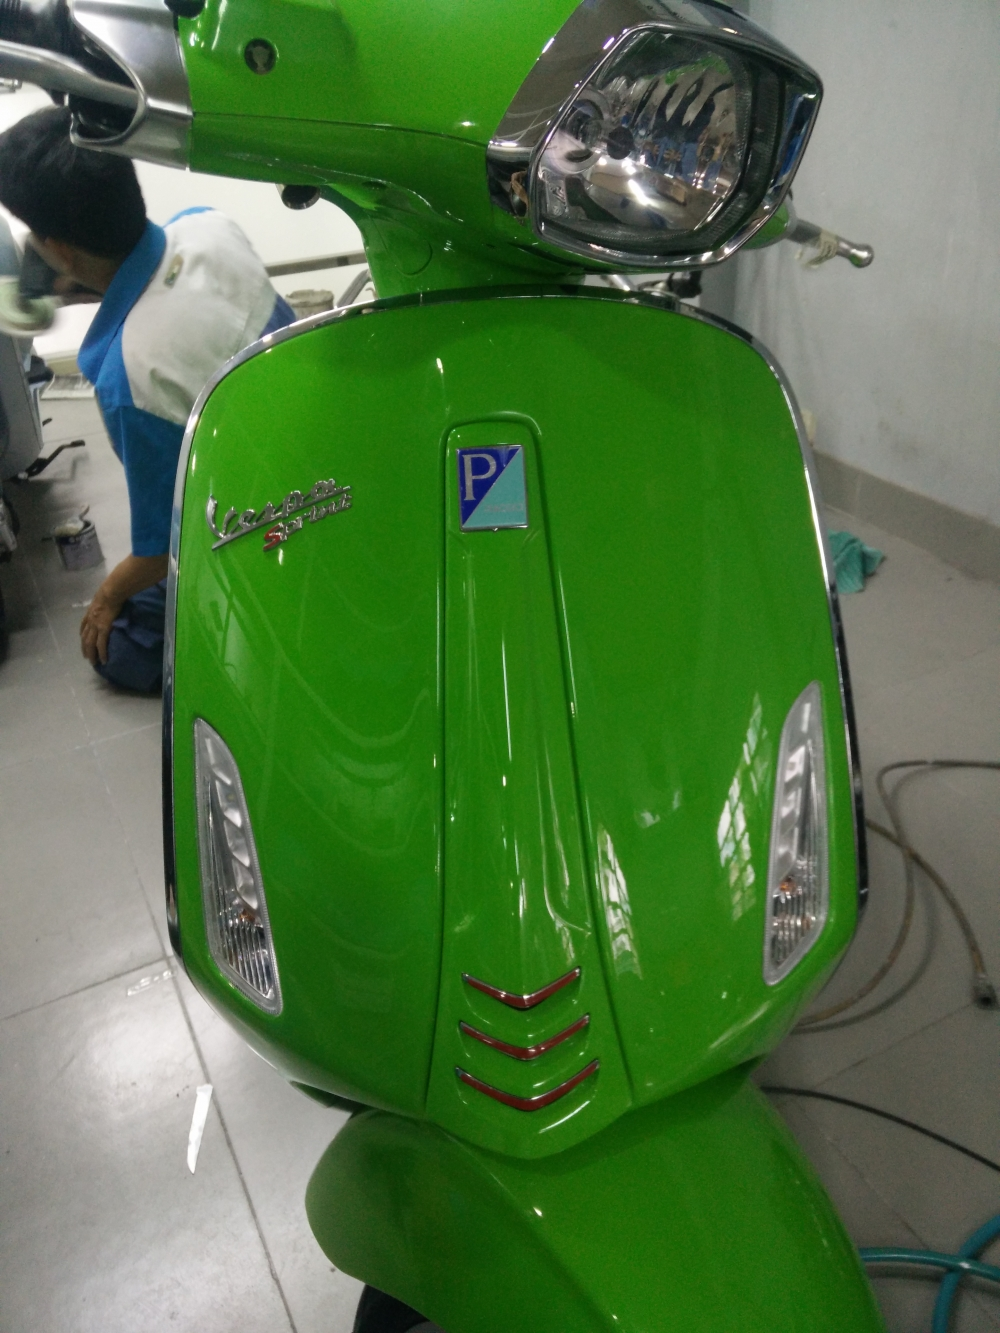 VESPA Sprint ABS chinh hang gia re nhat SG - 16